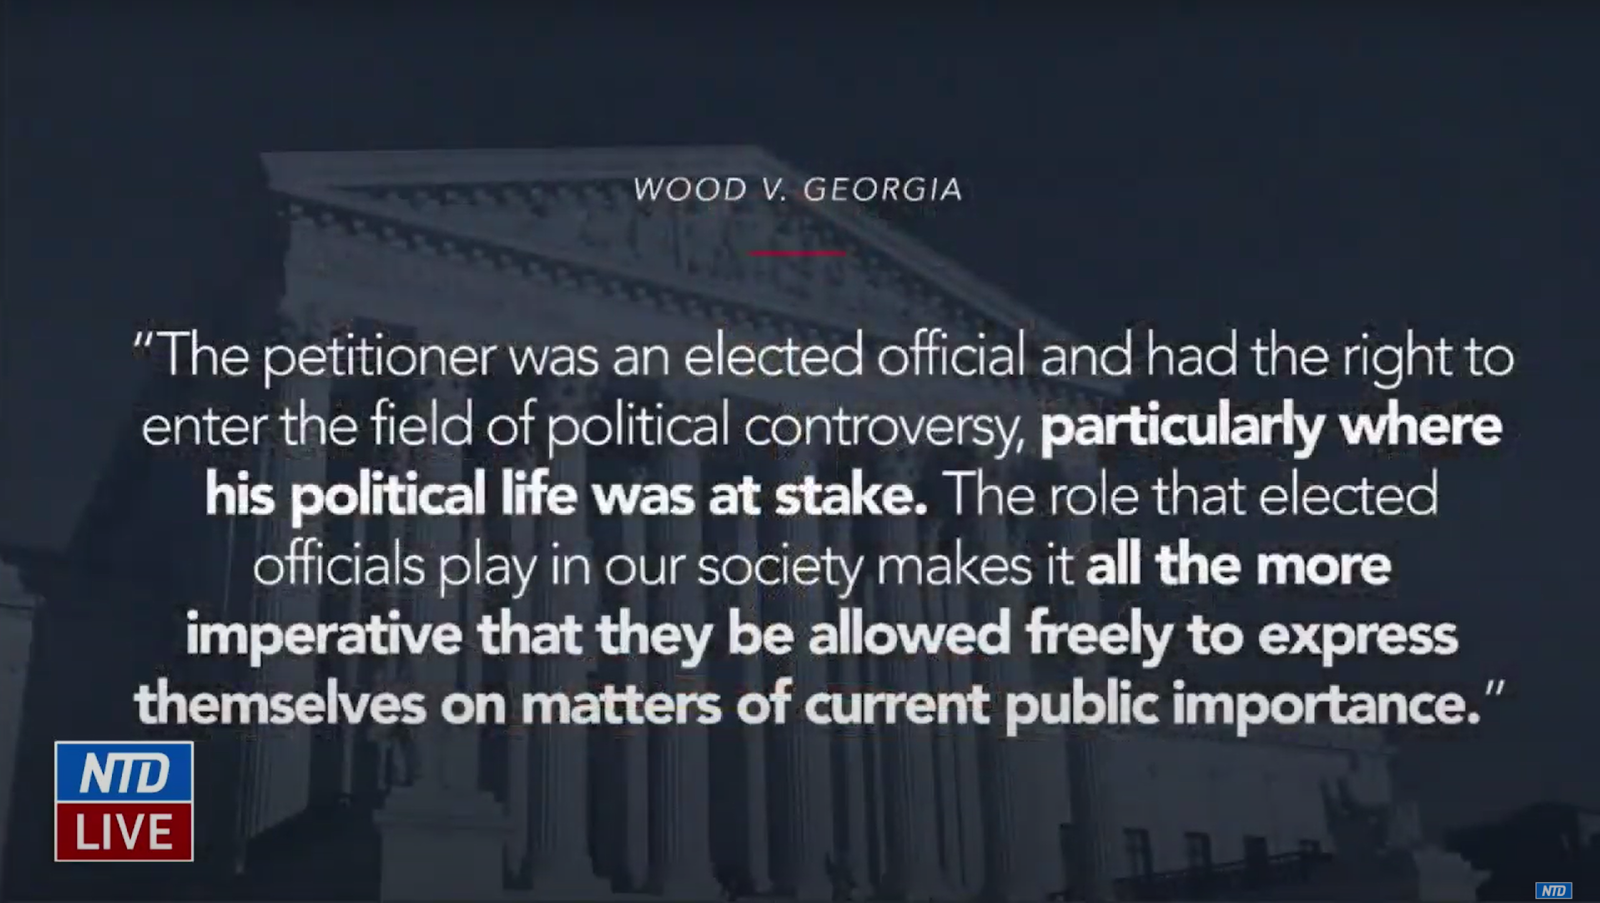 The defense argued that Wood v. Georgia set precedent that the sheriff was within his rights to do what he was convicted for because it involved his political livelihood and that, because of the roles the elected play in society, they are allowed to speak freely on matters of public importance.